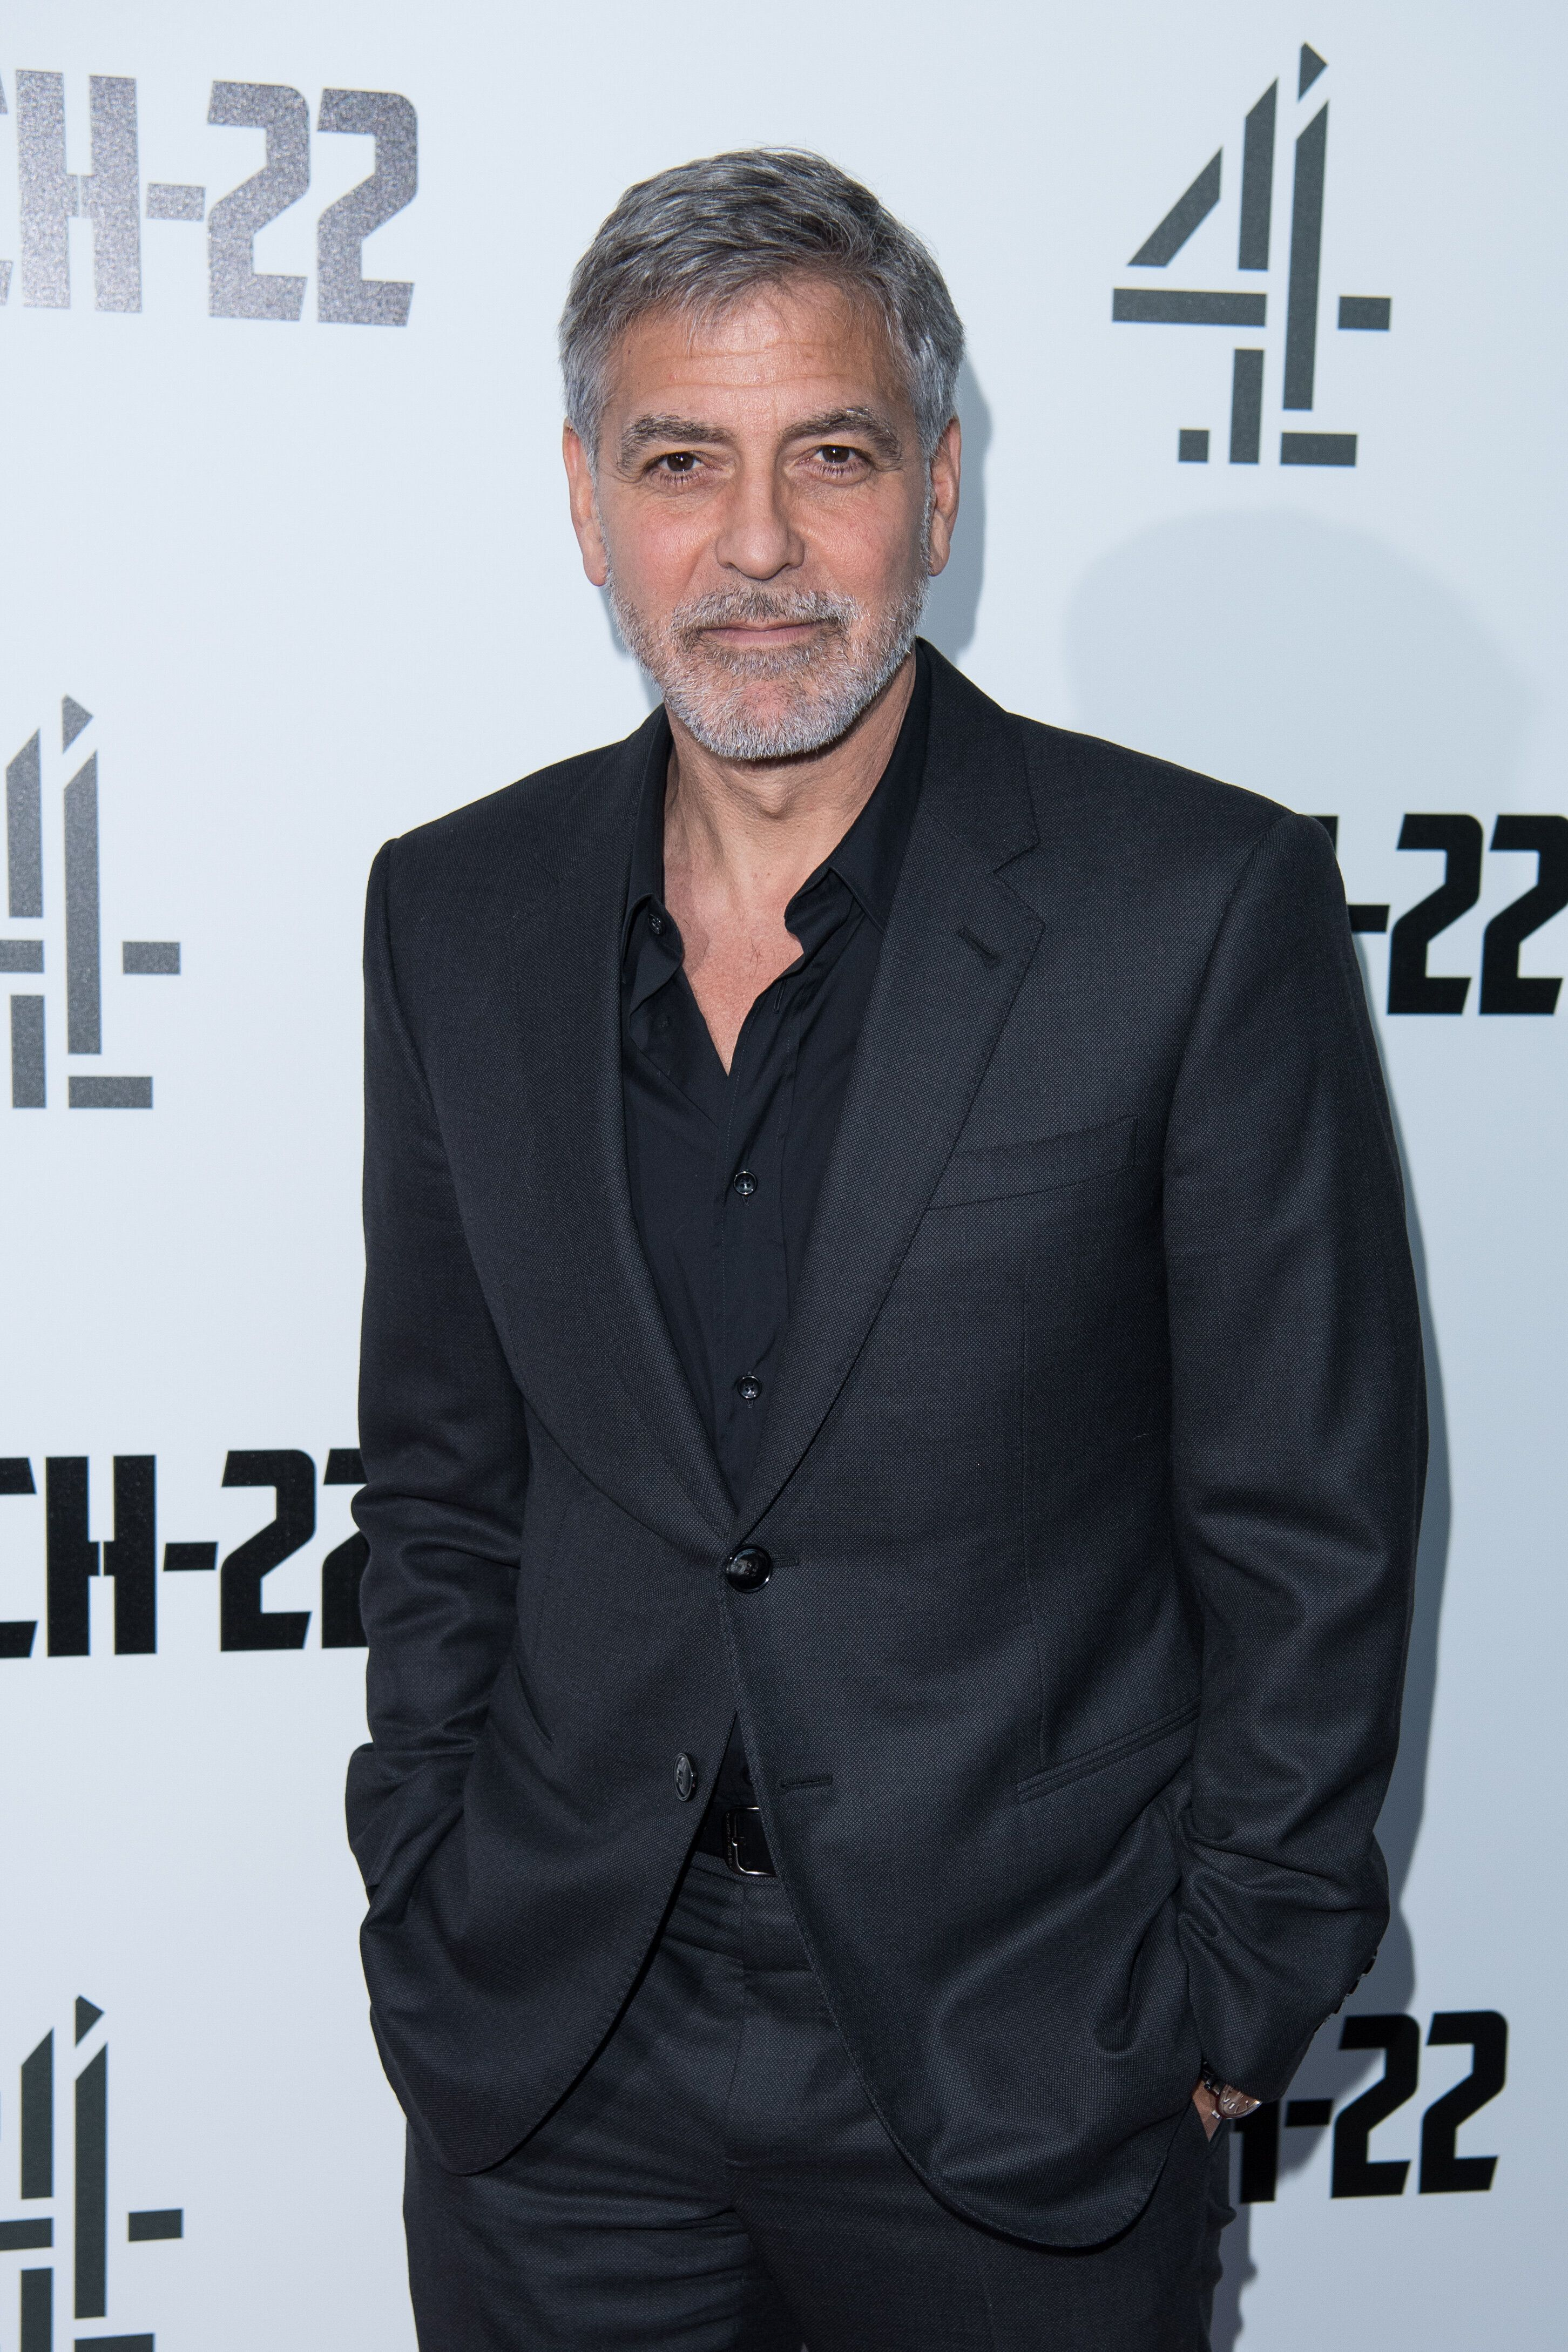 George Clooney Opens Up About Near-Fatal Motorcycle